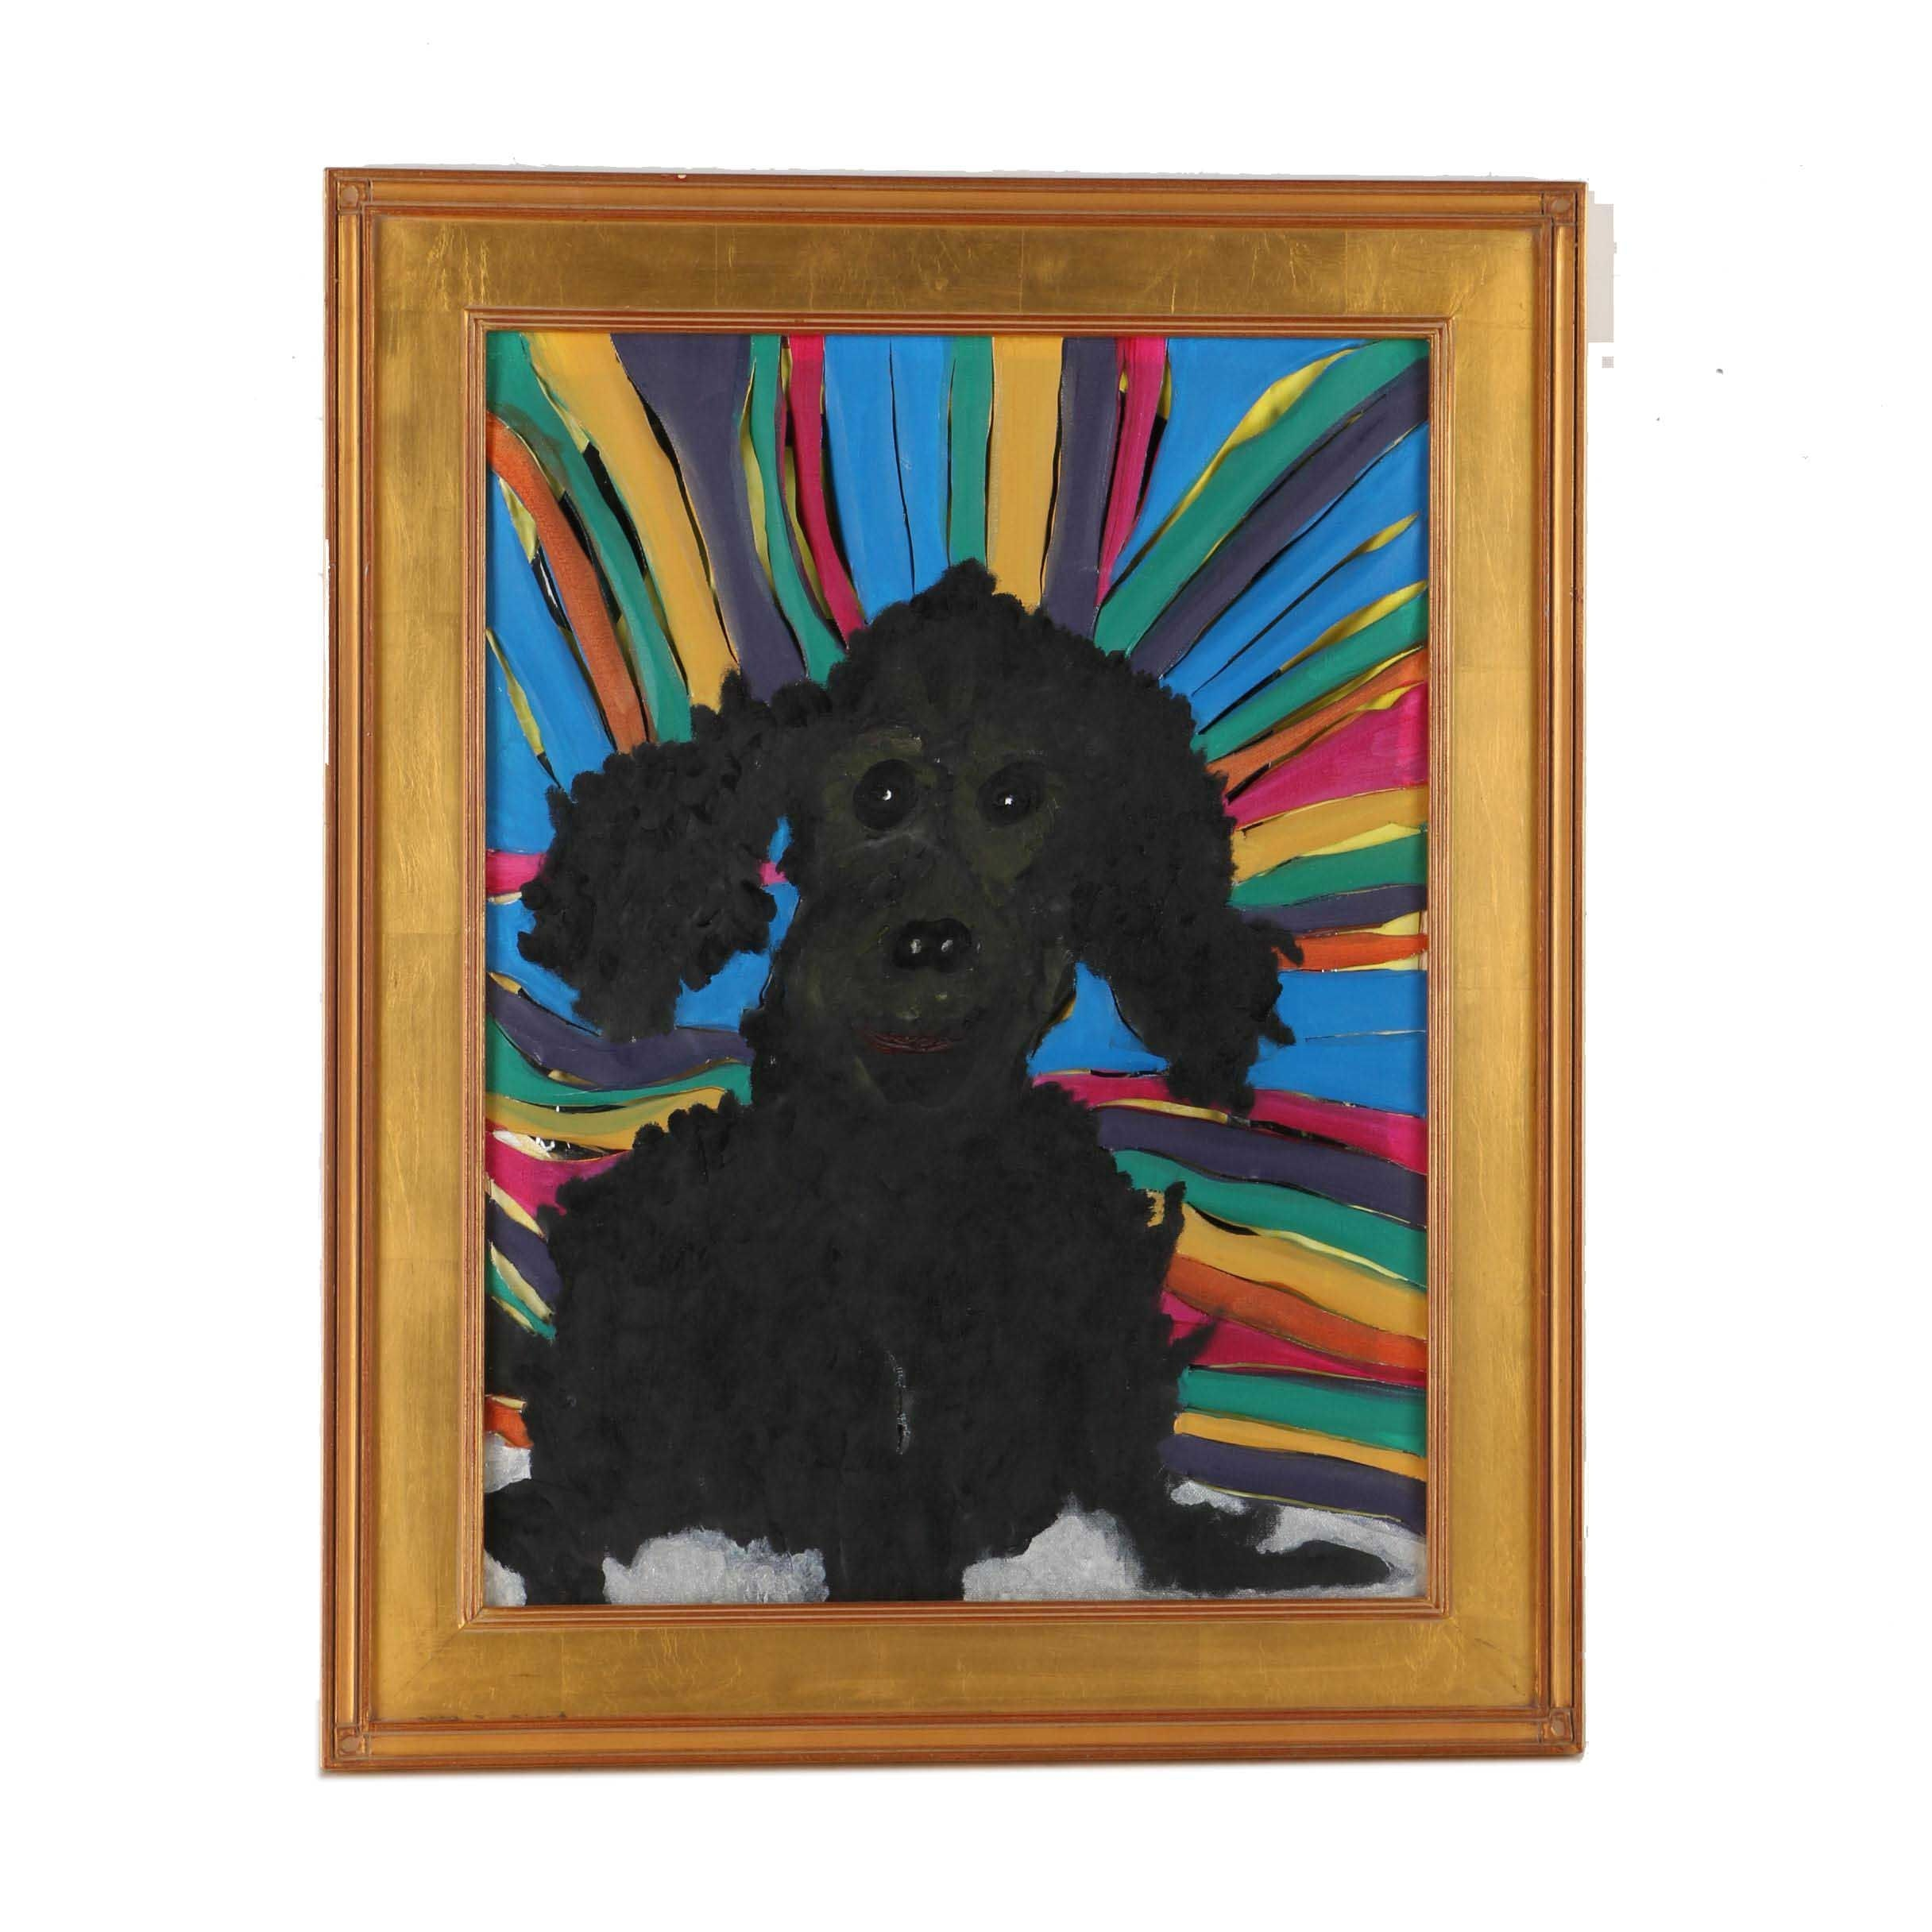 Acrylic Painting on Canvas of Smiling Poodle Against a Rainbow Background